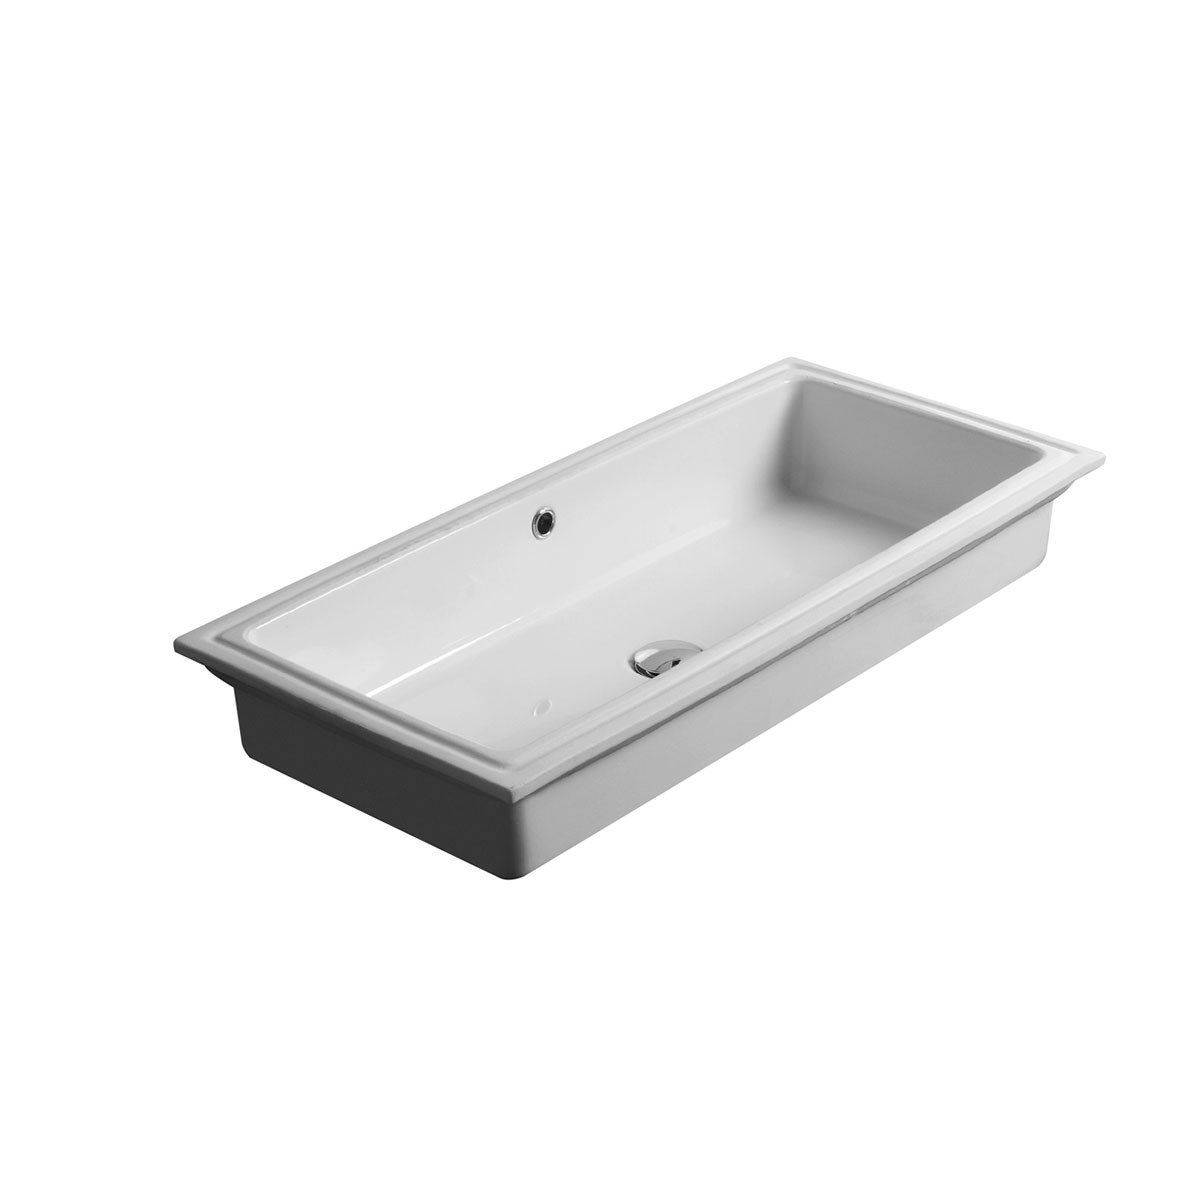 Beautiful Modern Designer High End Luxurious Large Rectangular Undermount Bathroom Sink In Ceramic White